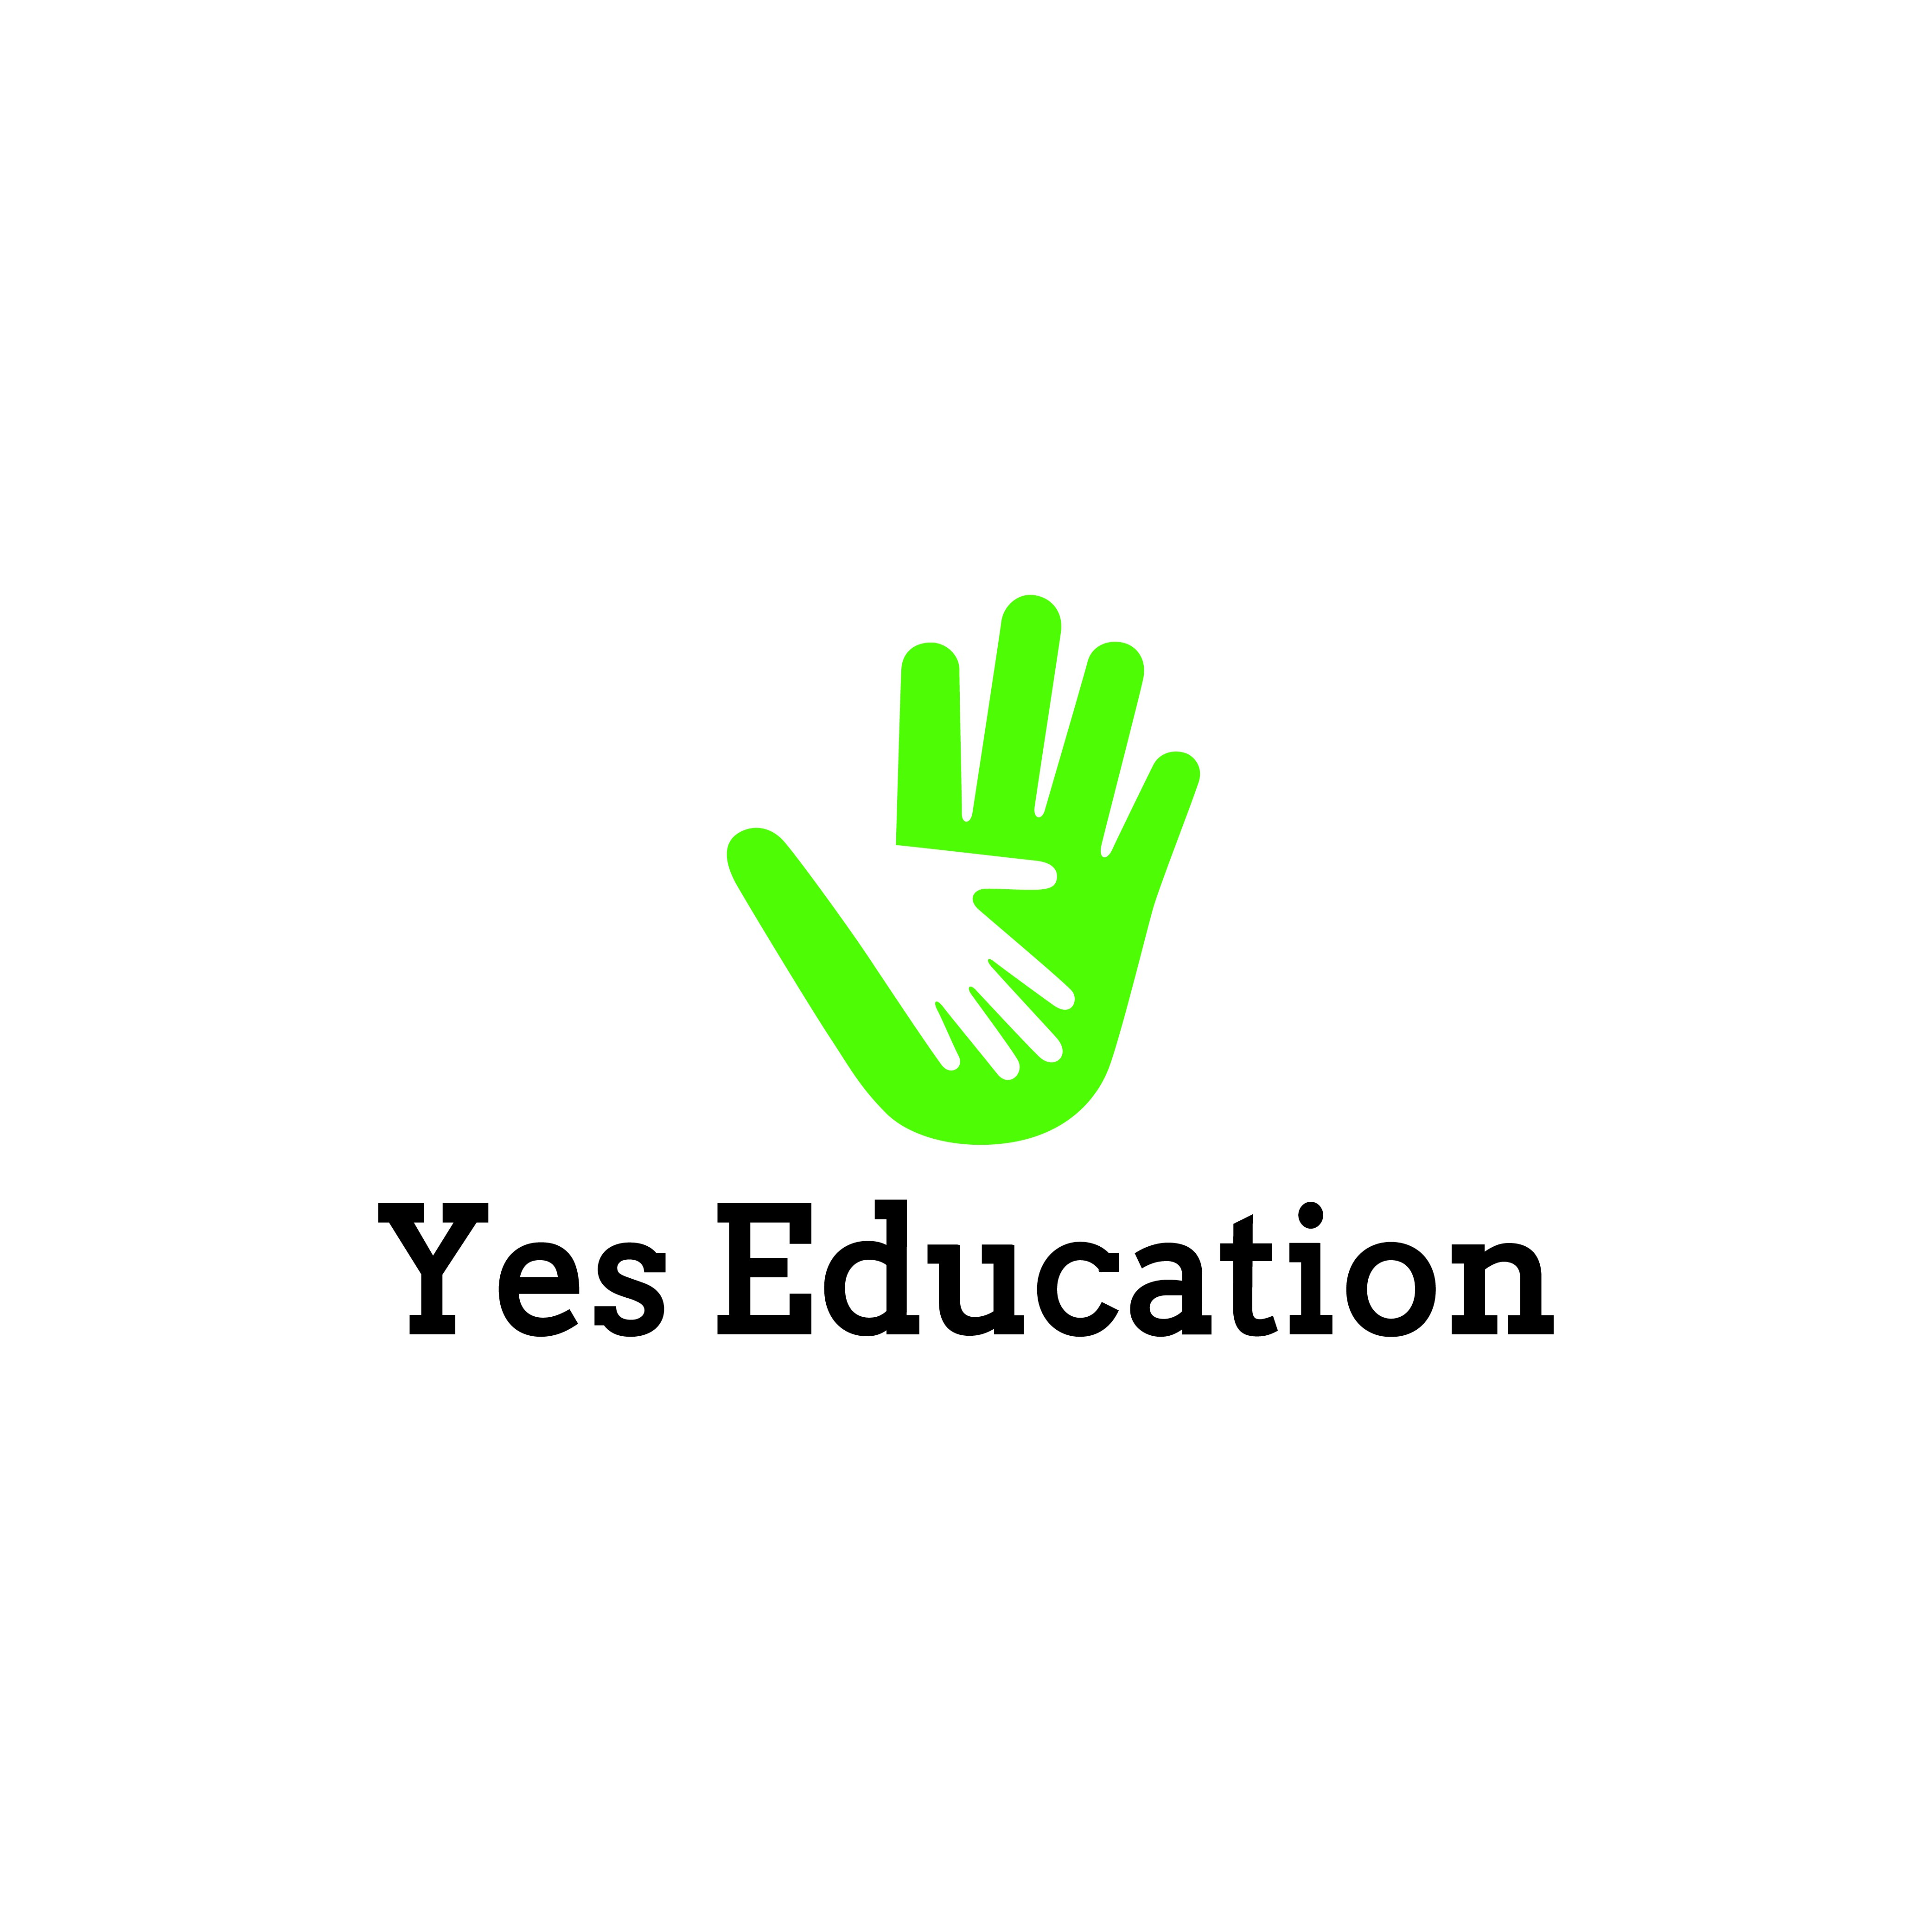 3dami's logo for yes.education